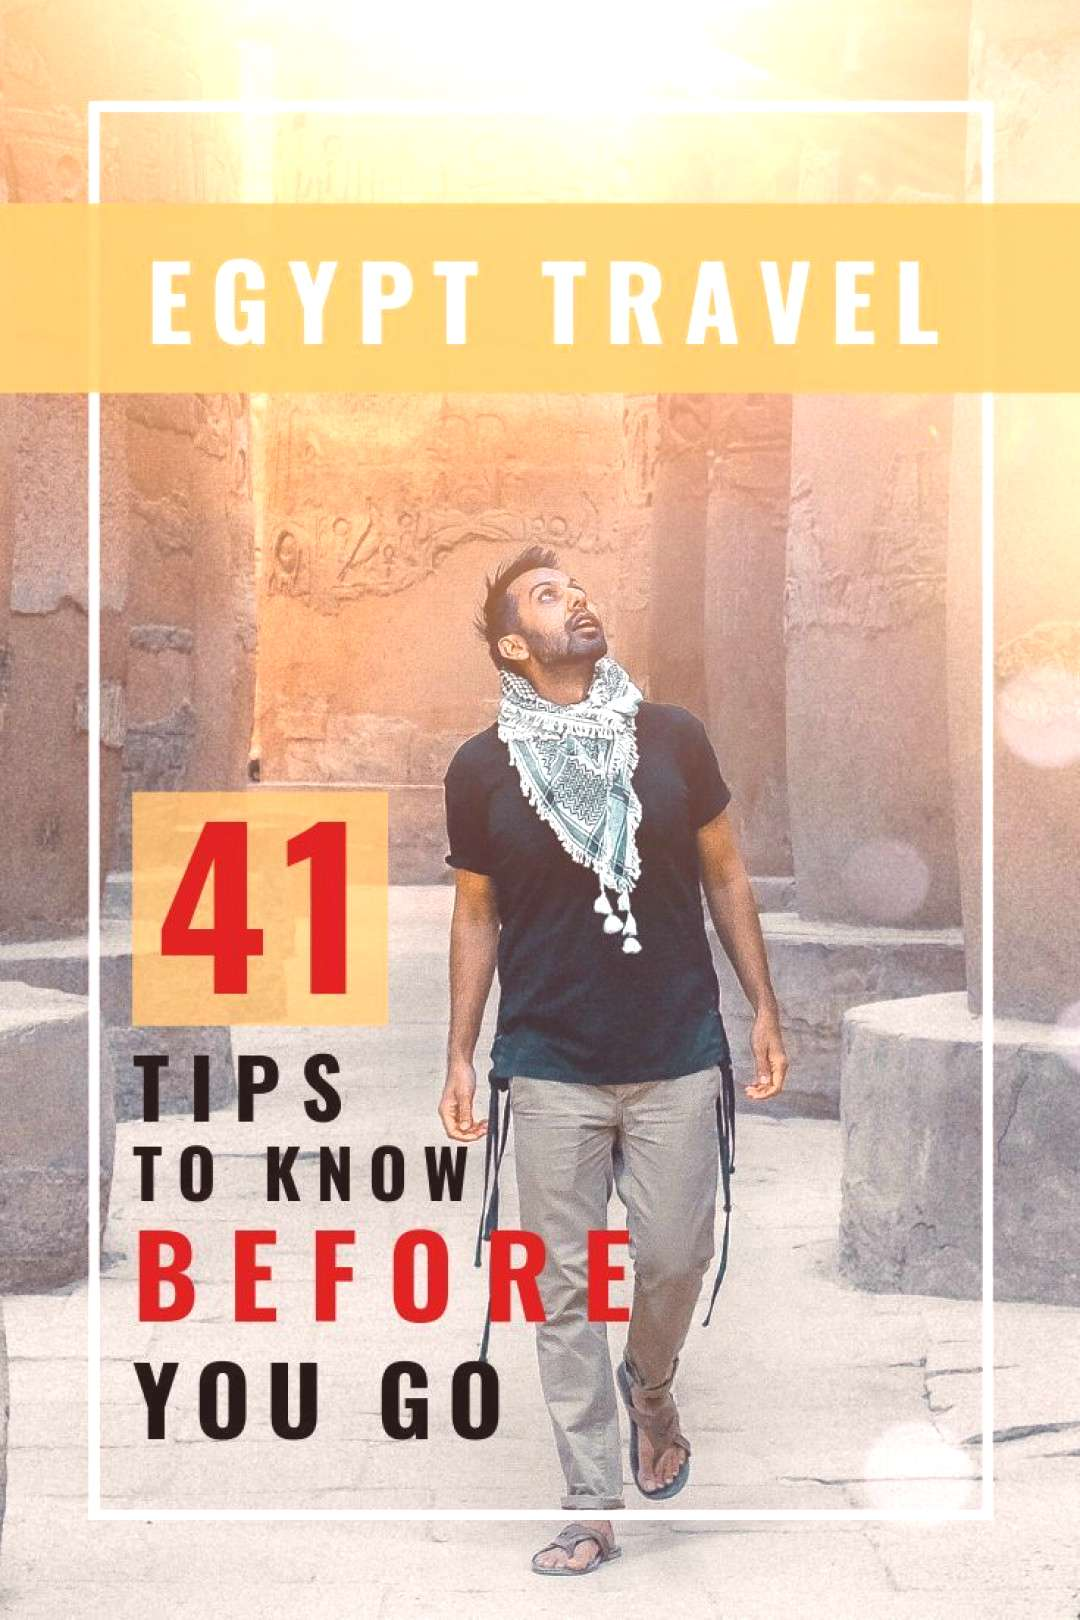 Egypt Travel Guide. Your ultimate planning guide of 41 Egypt travel tips to know BEFORE you go Trav